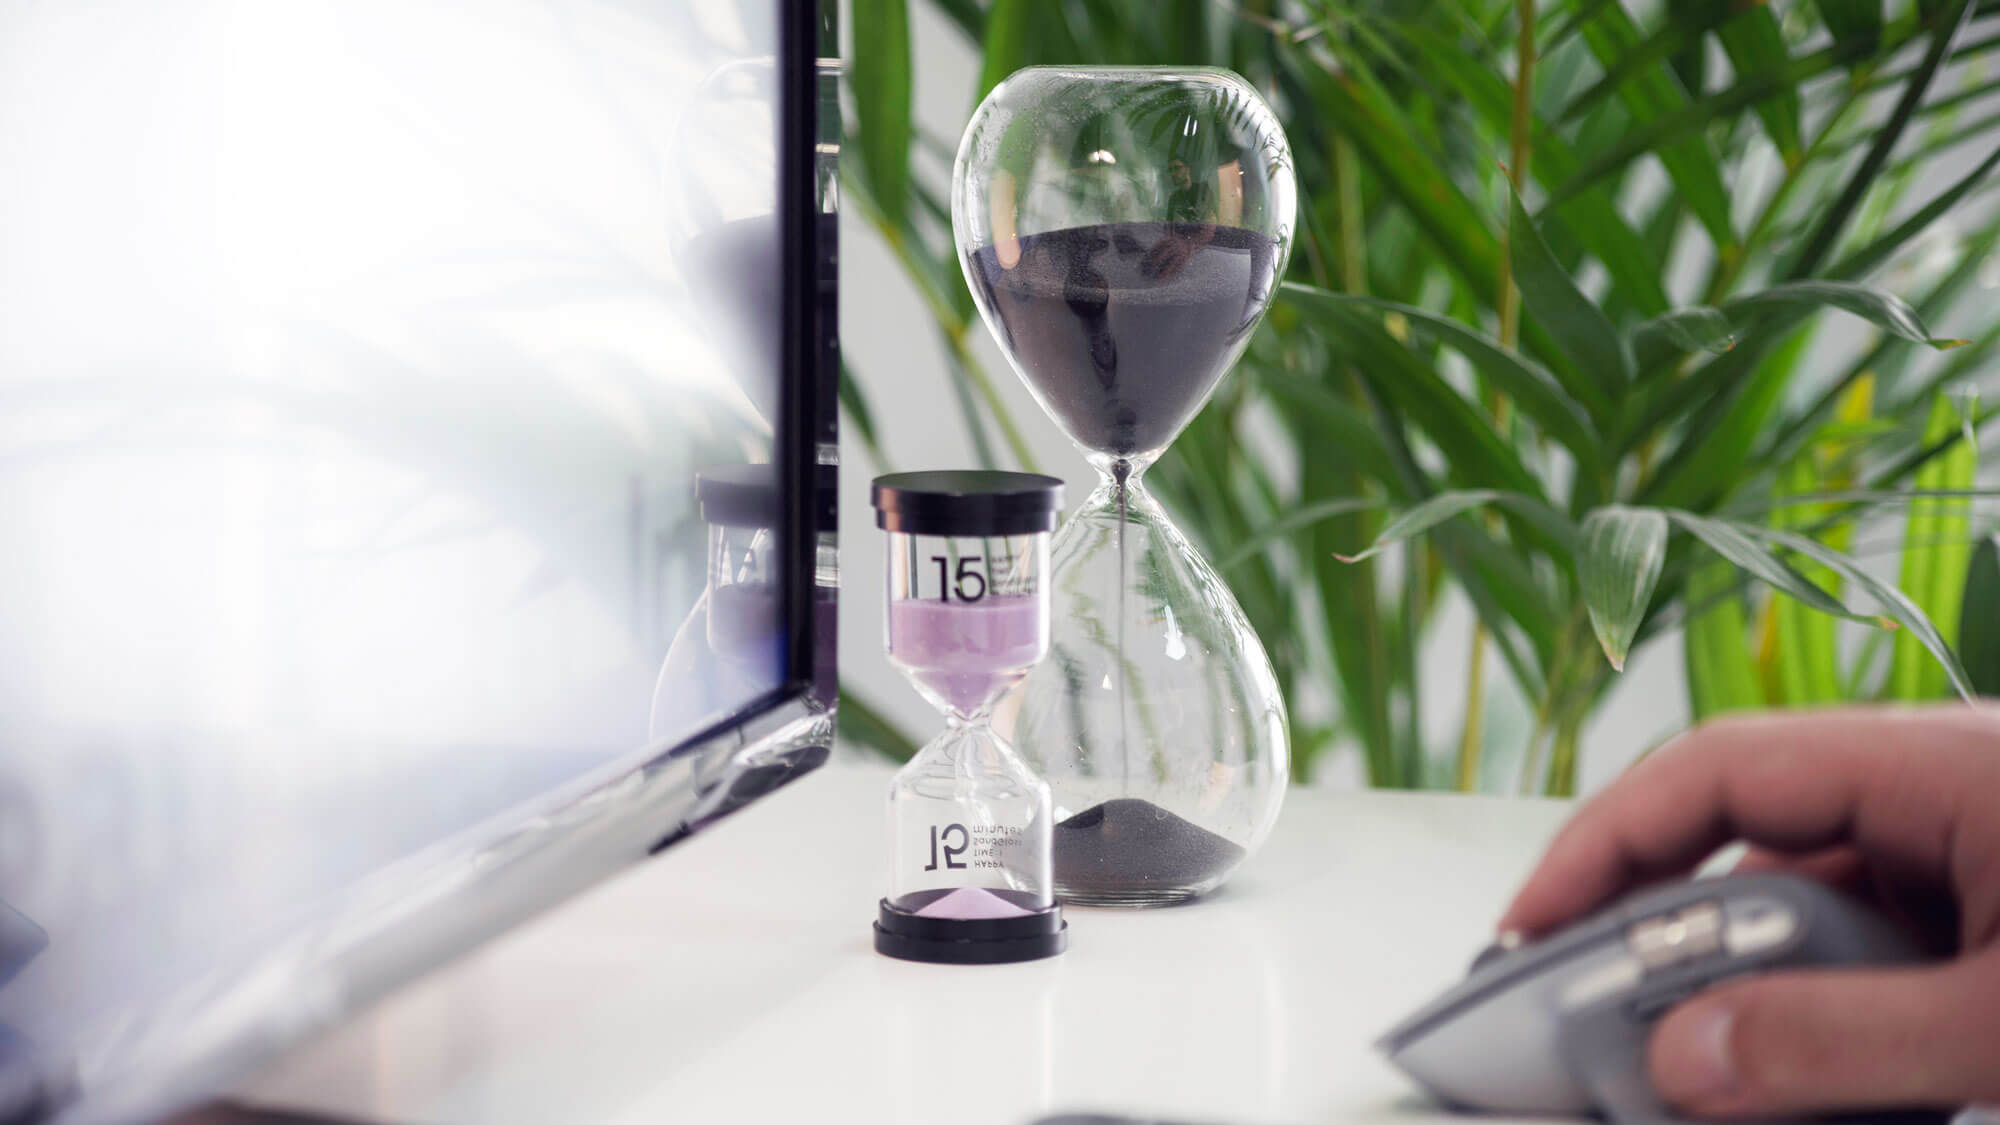 Employees are a great source of ideas for time-saving productivity improvements